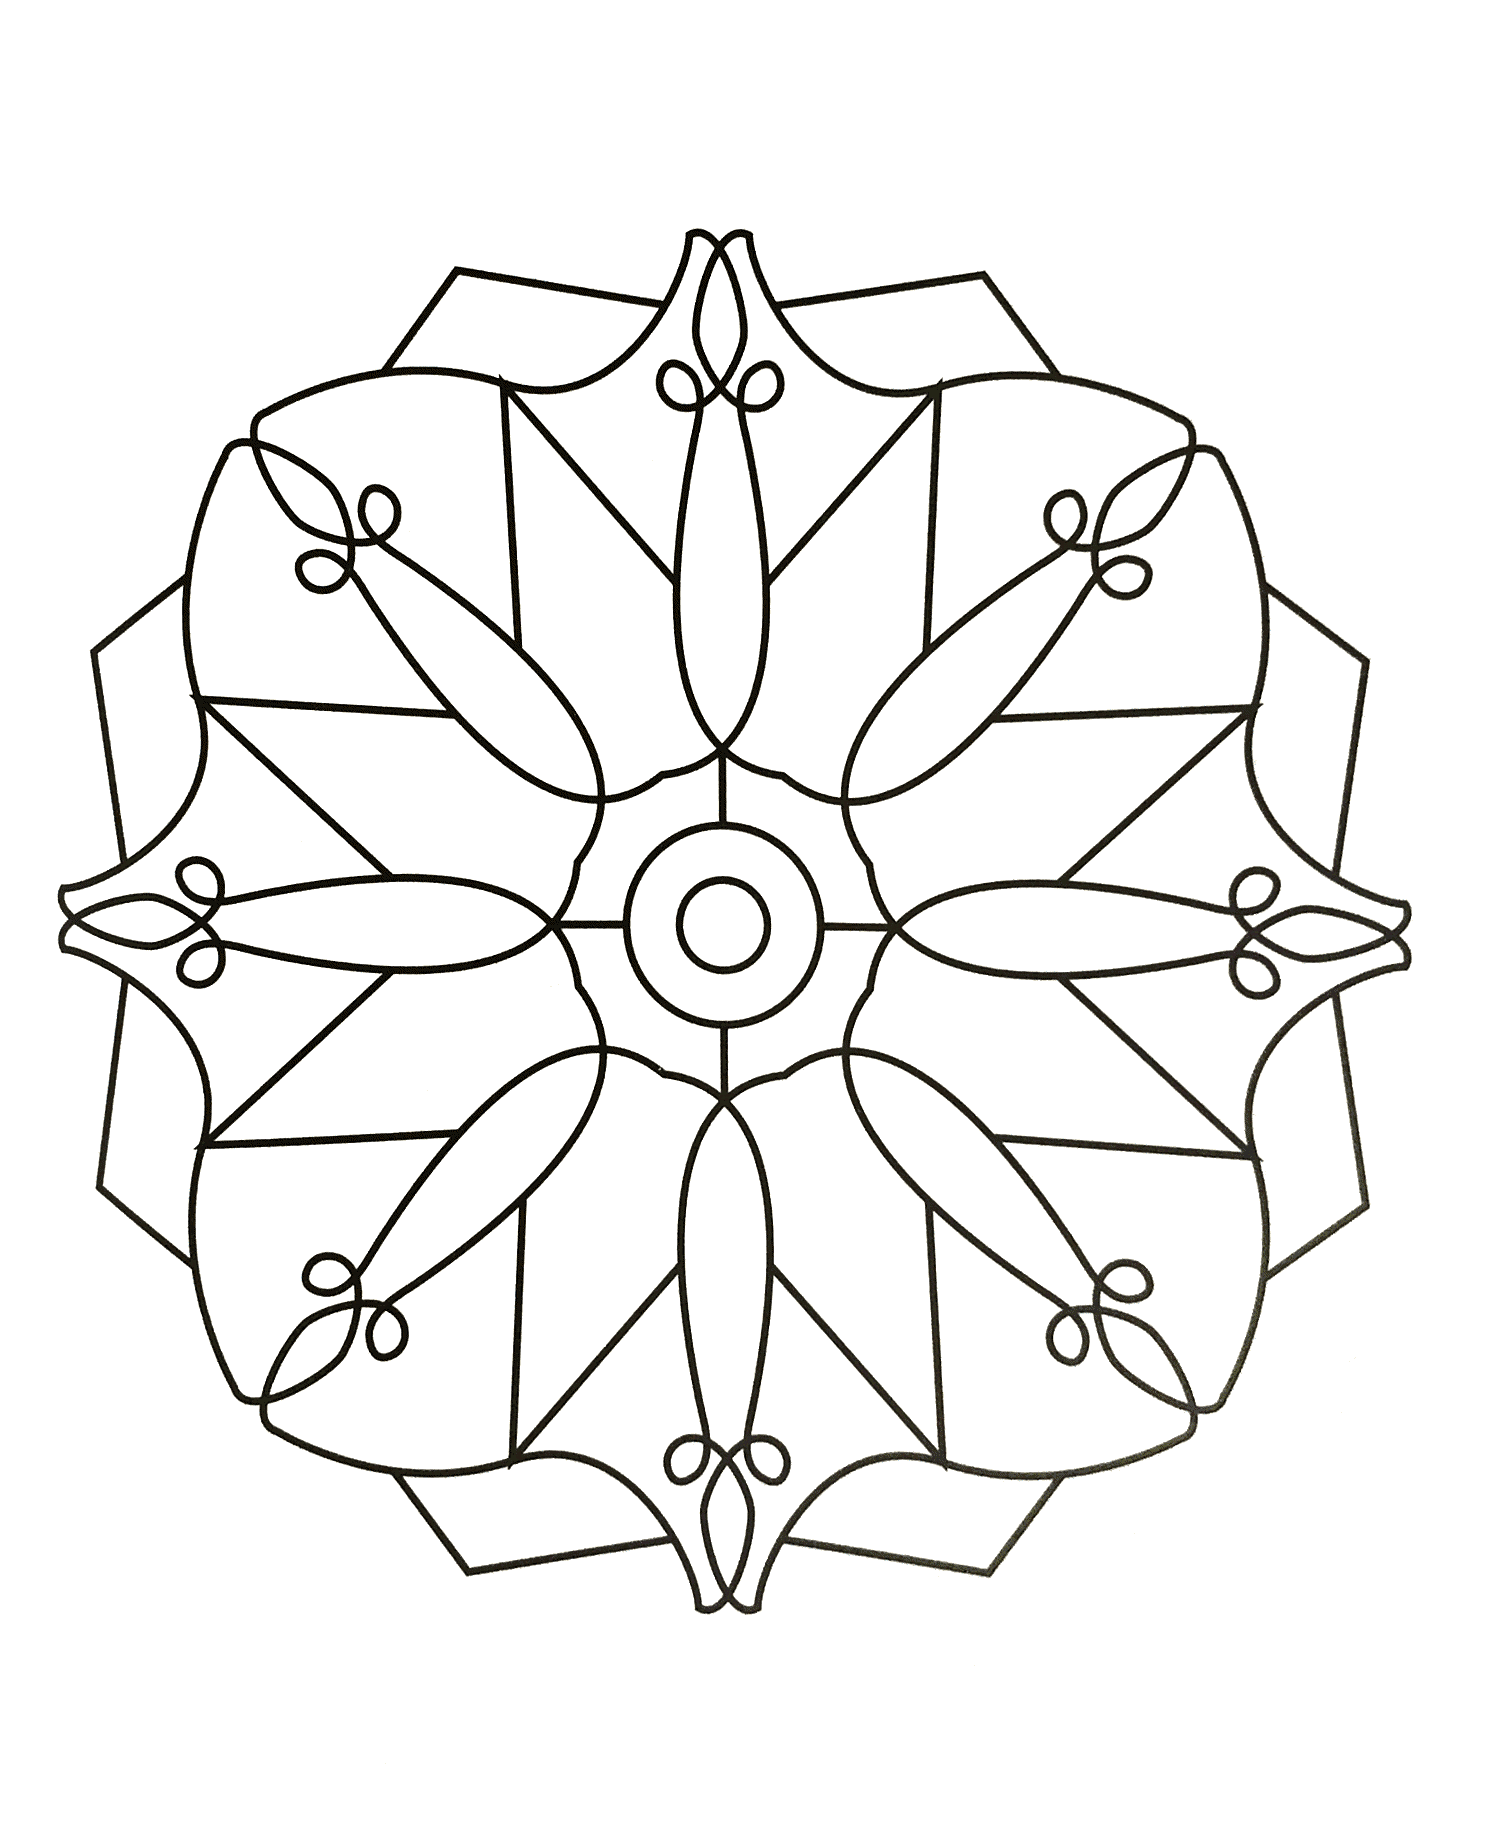 coloring pages for kids simple mandala 85 print - Simple Mandala Coloring Pages